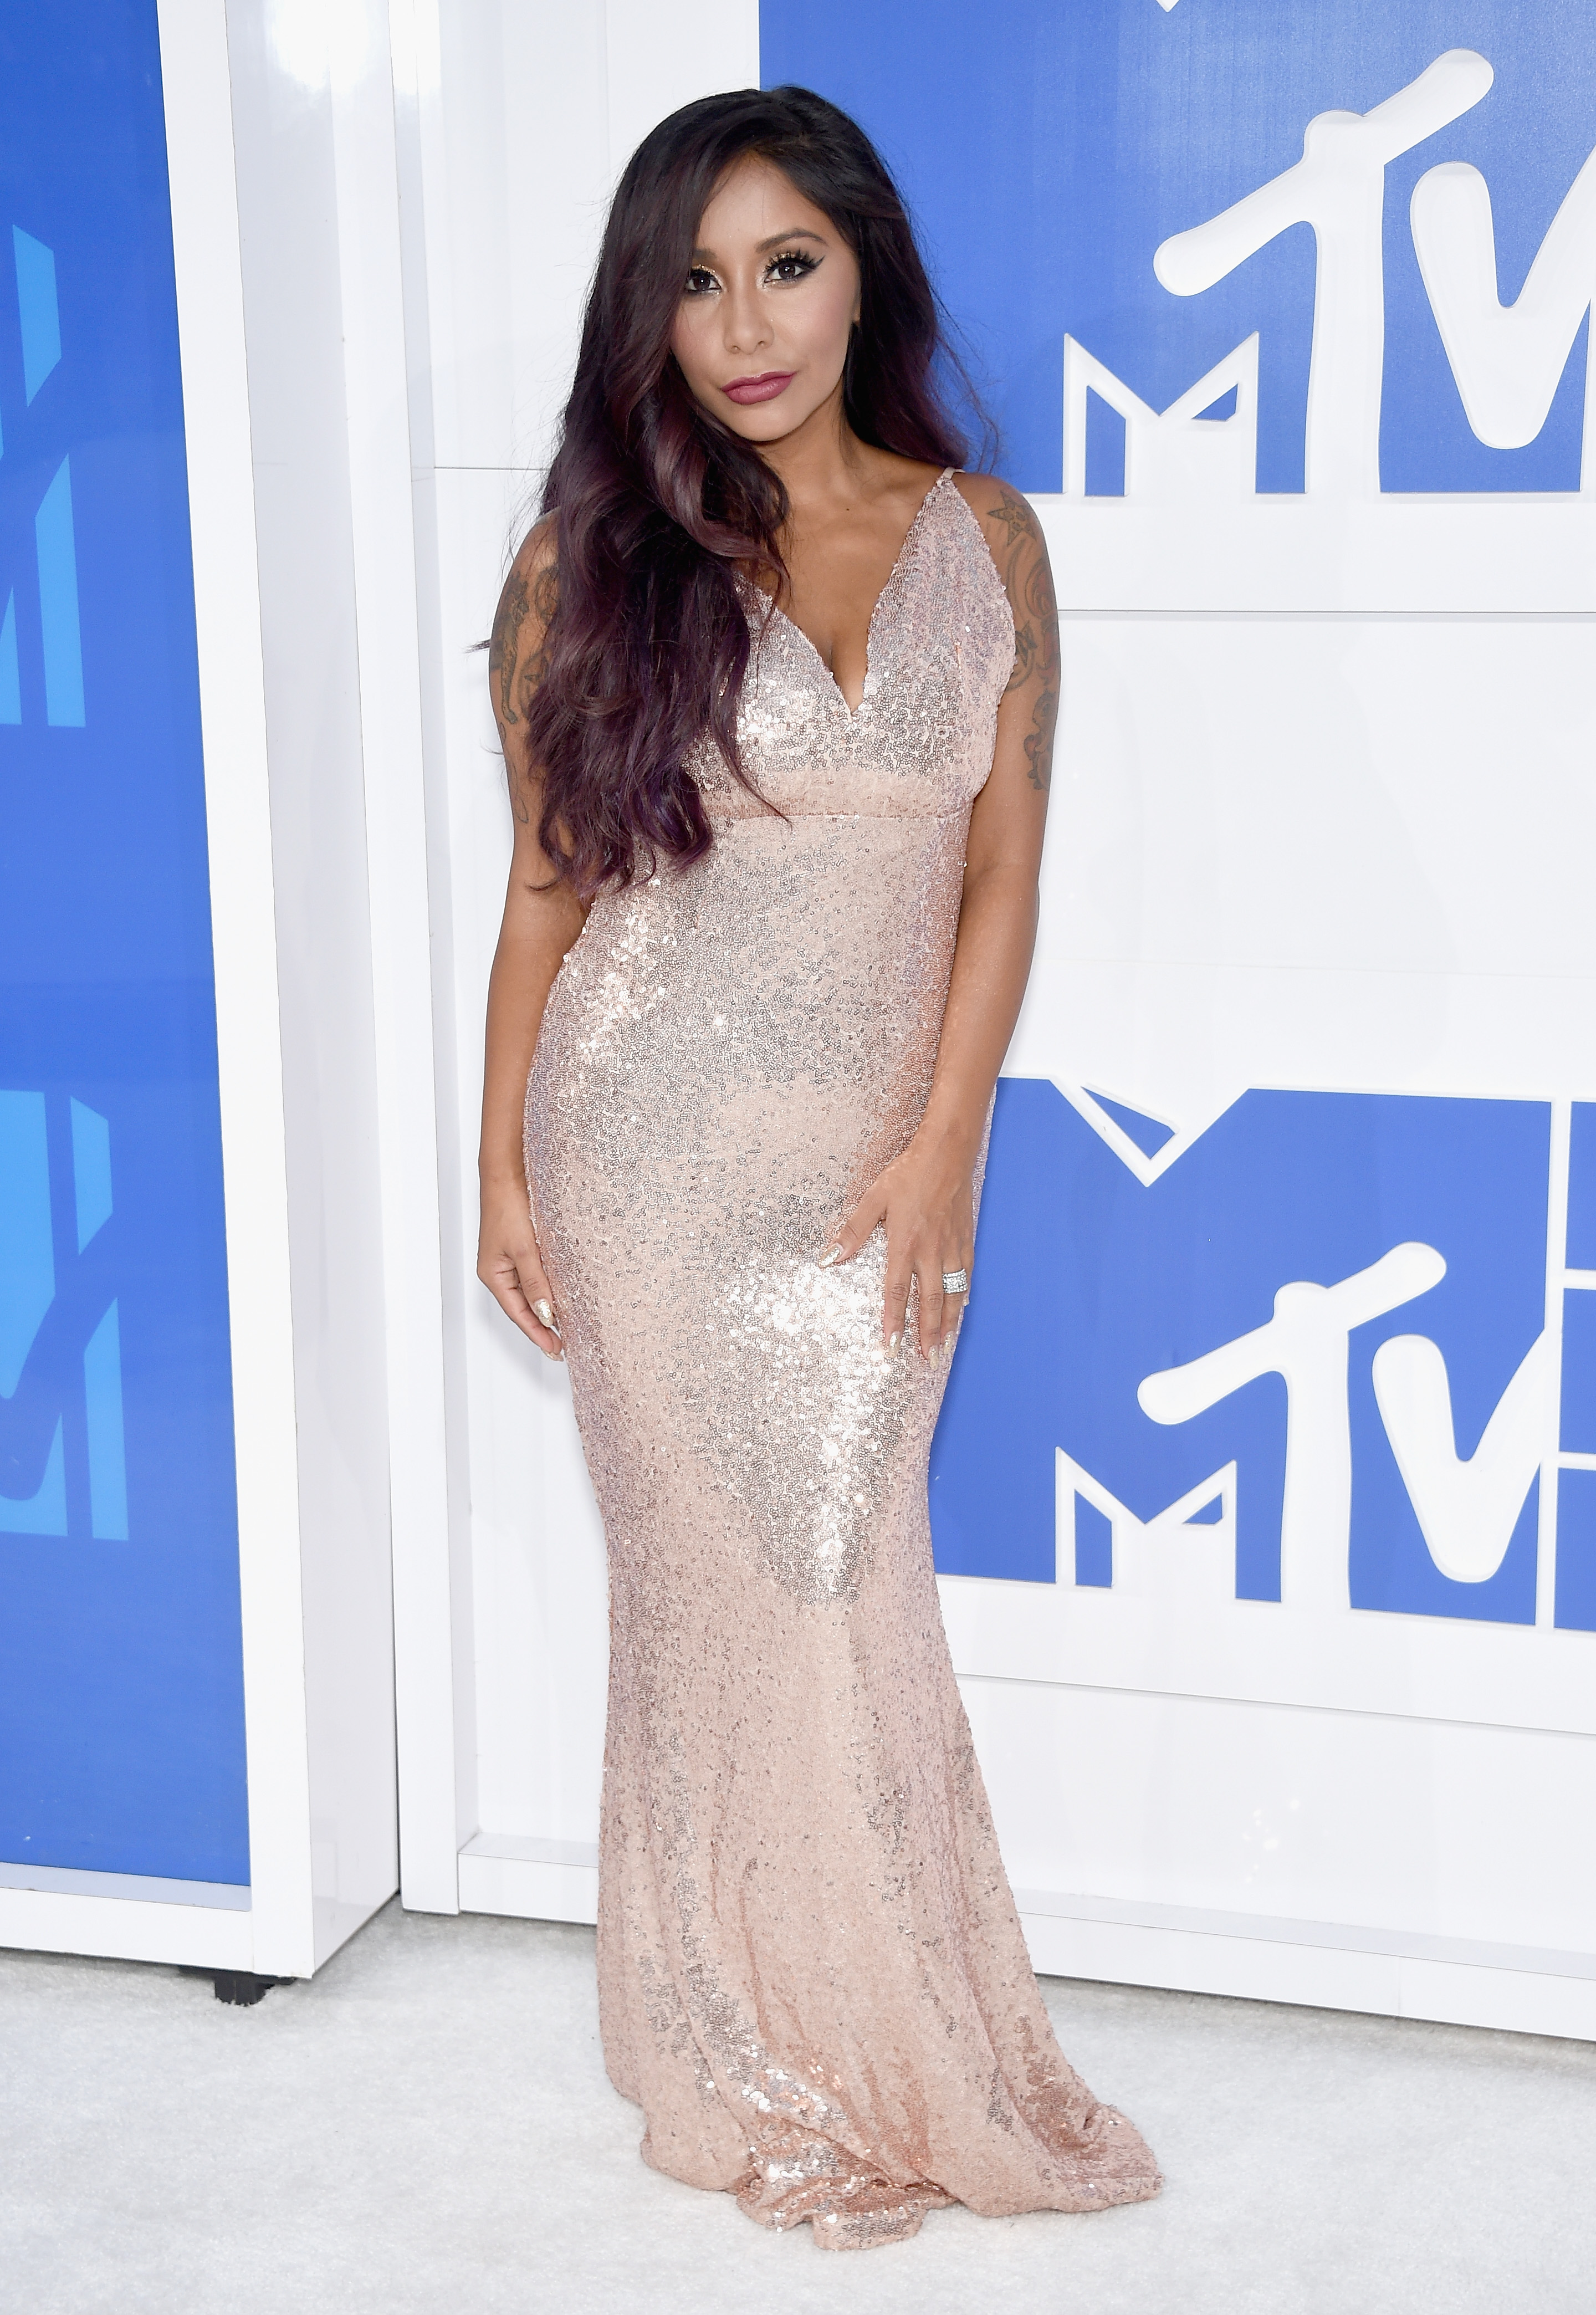 Nicole 'Snooki' Polizzi attends the 2016 MTV Video Music Awards at Madison Square Garden on Aug. 28, 2016 in New York City.